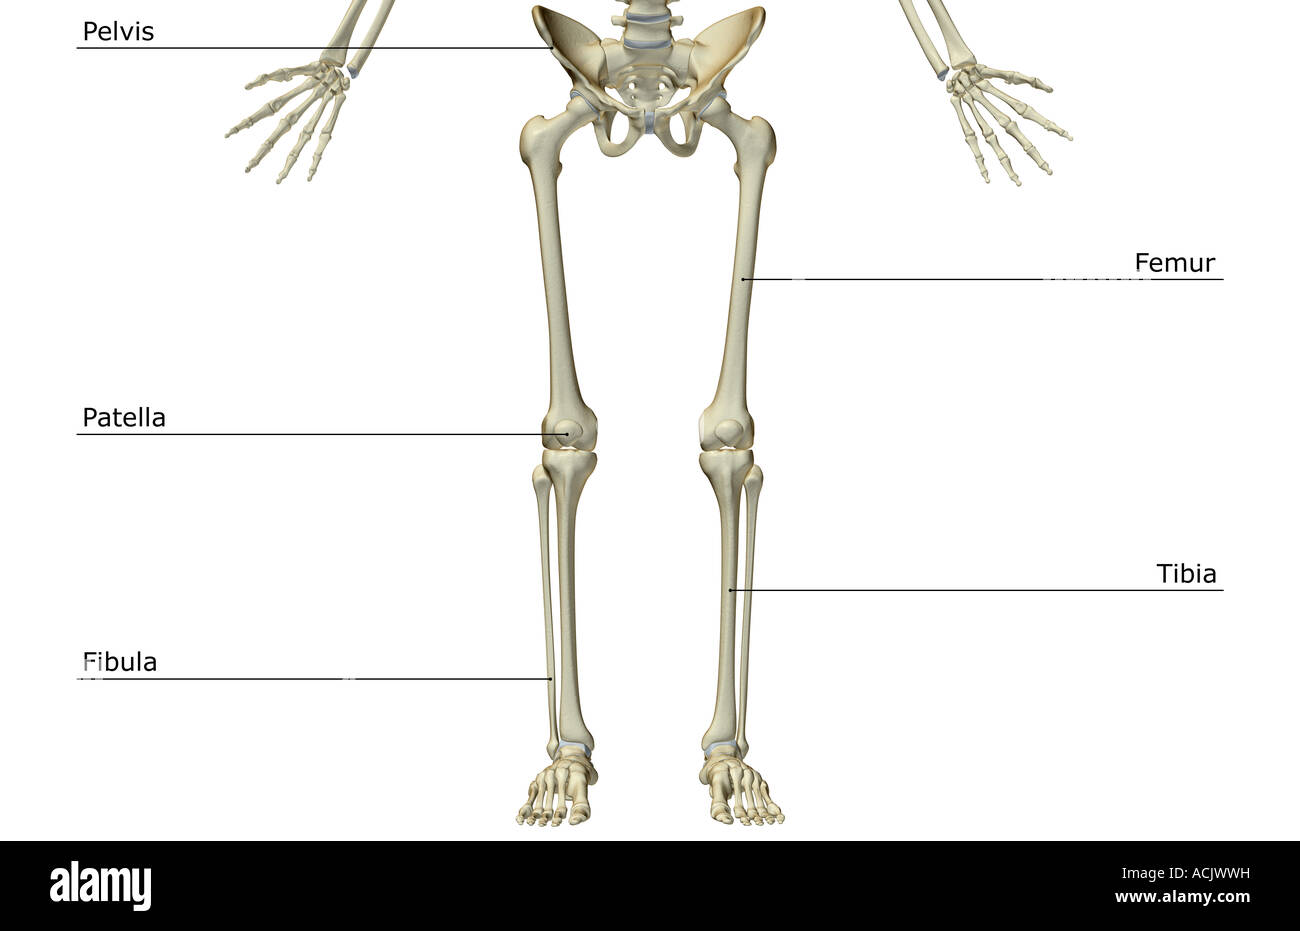 hight resolution of the bones of the lower body